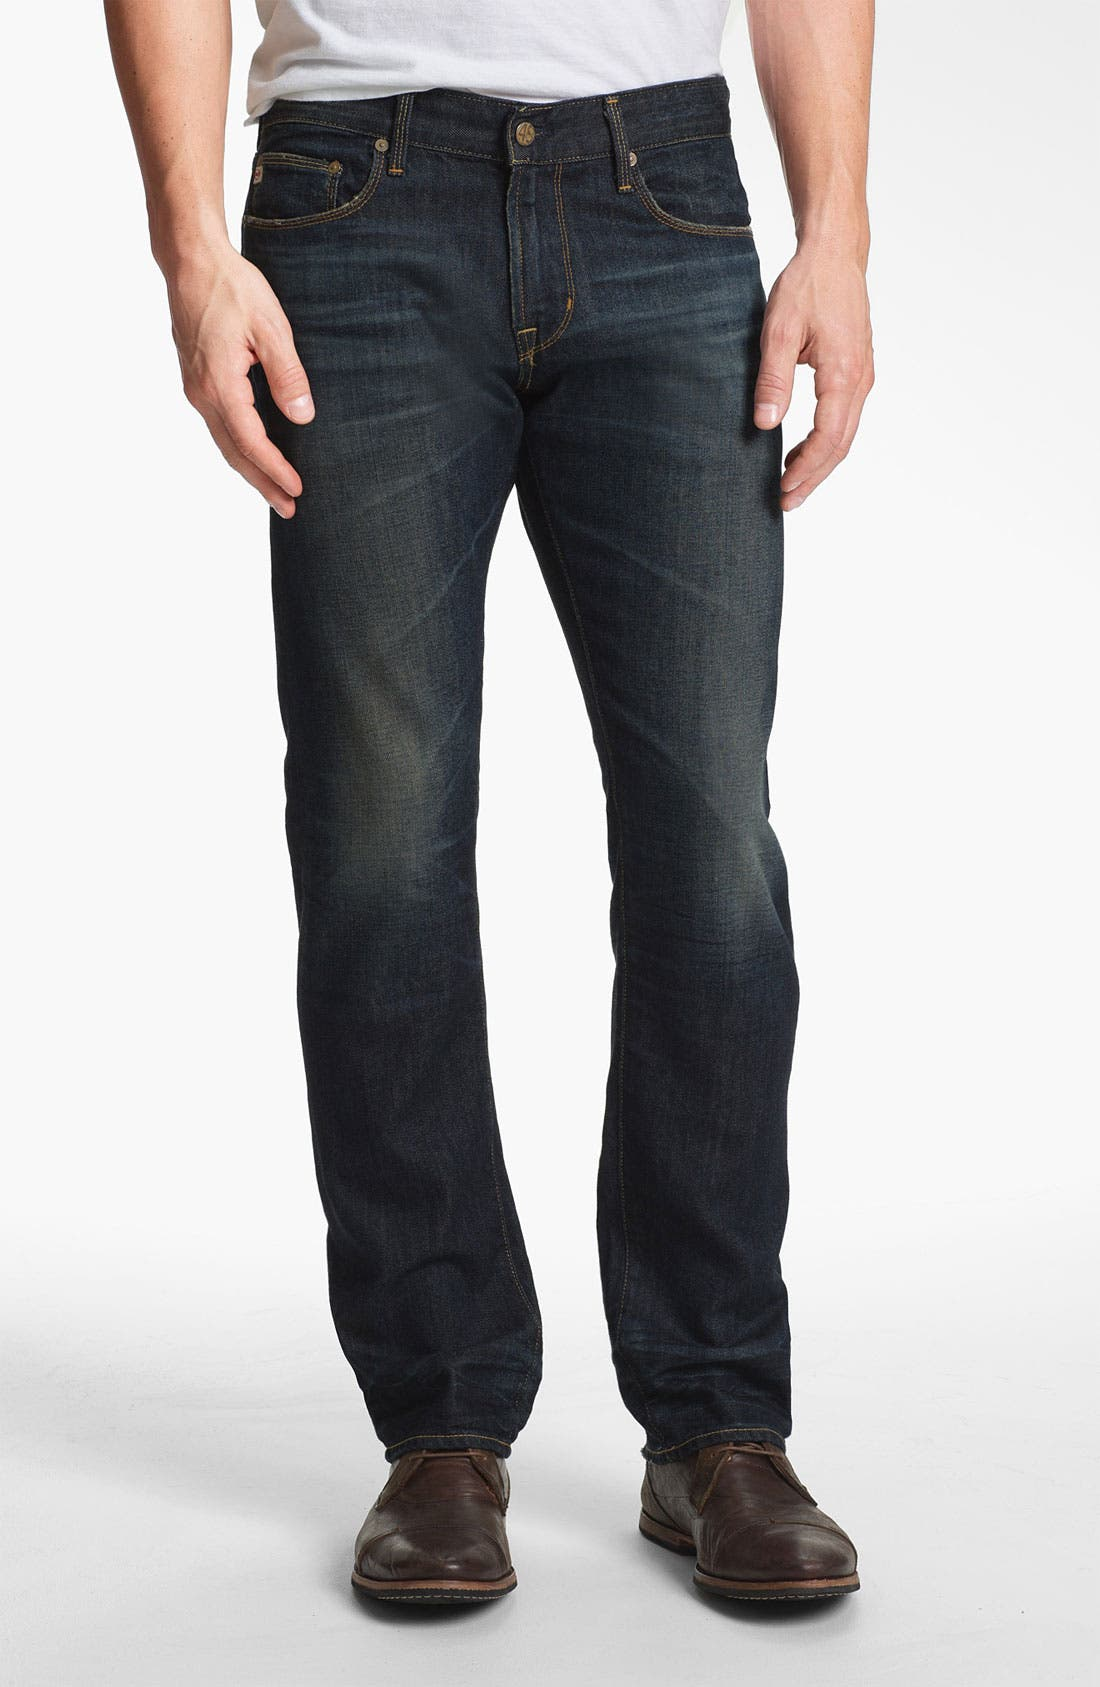 Alternate Image 1 Selected - AG Jeans 'Geffen Easy Slim' Straight Leg Jeans (5 Years Raw Fade)